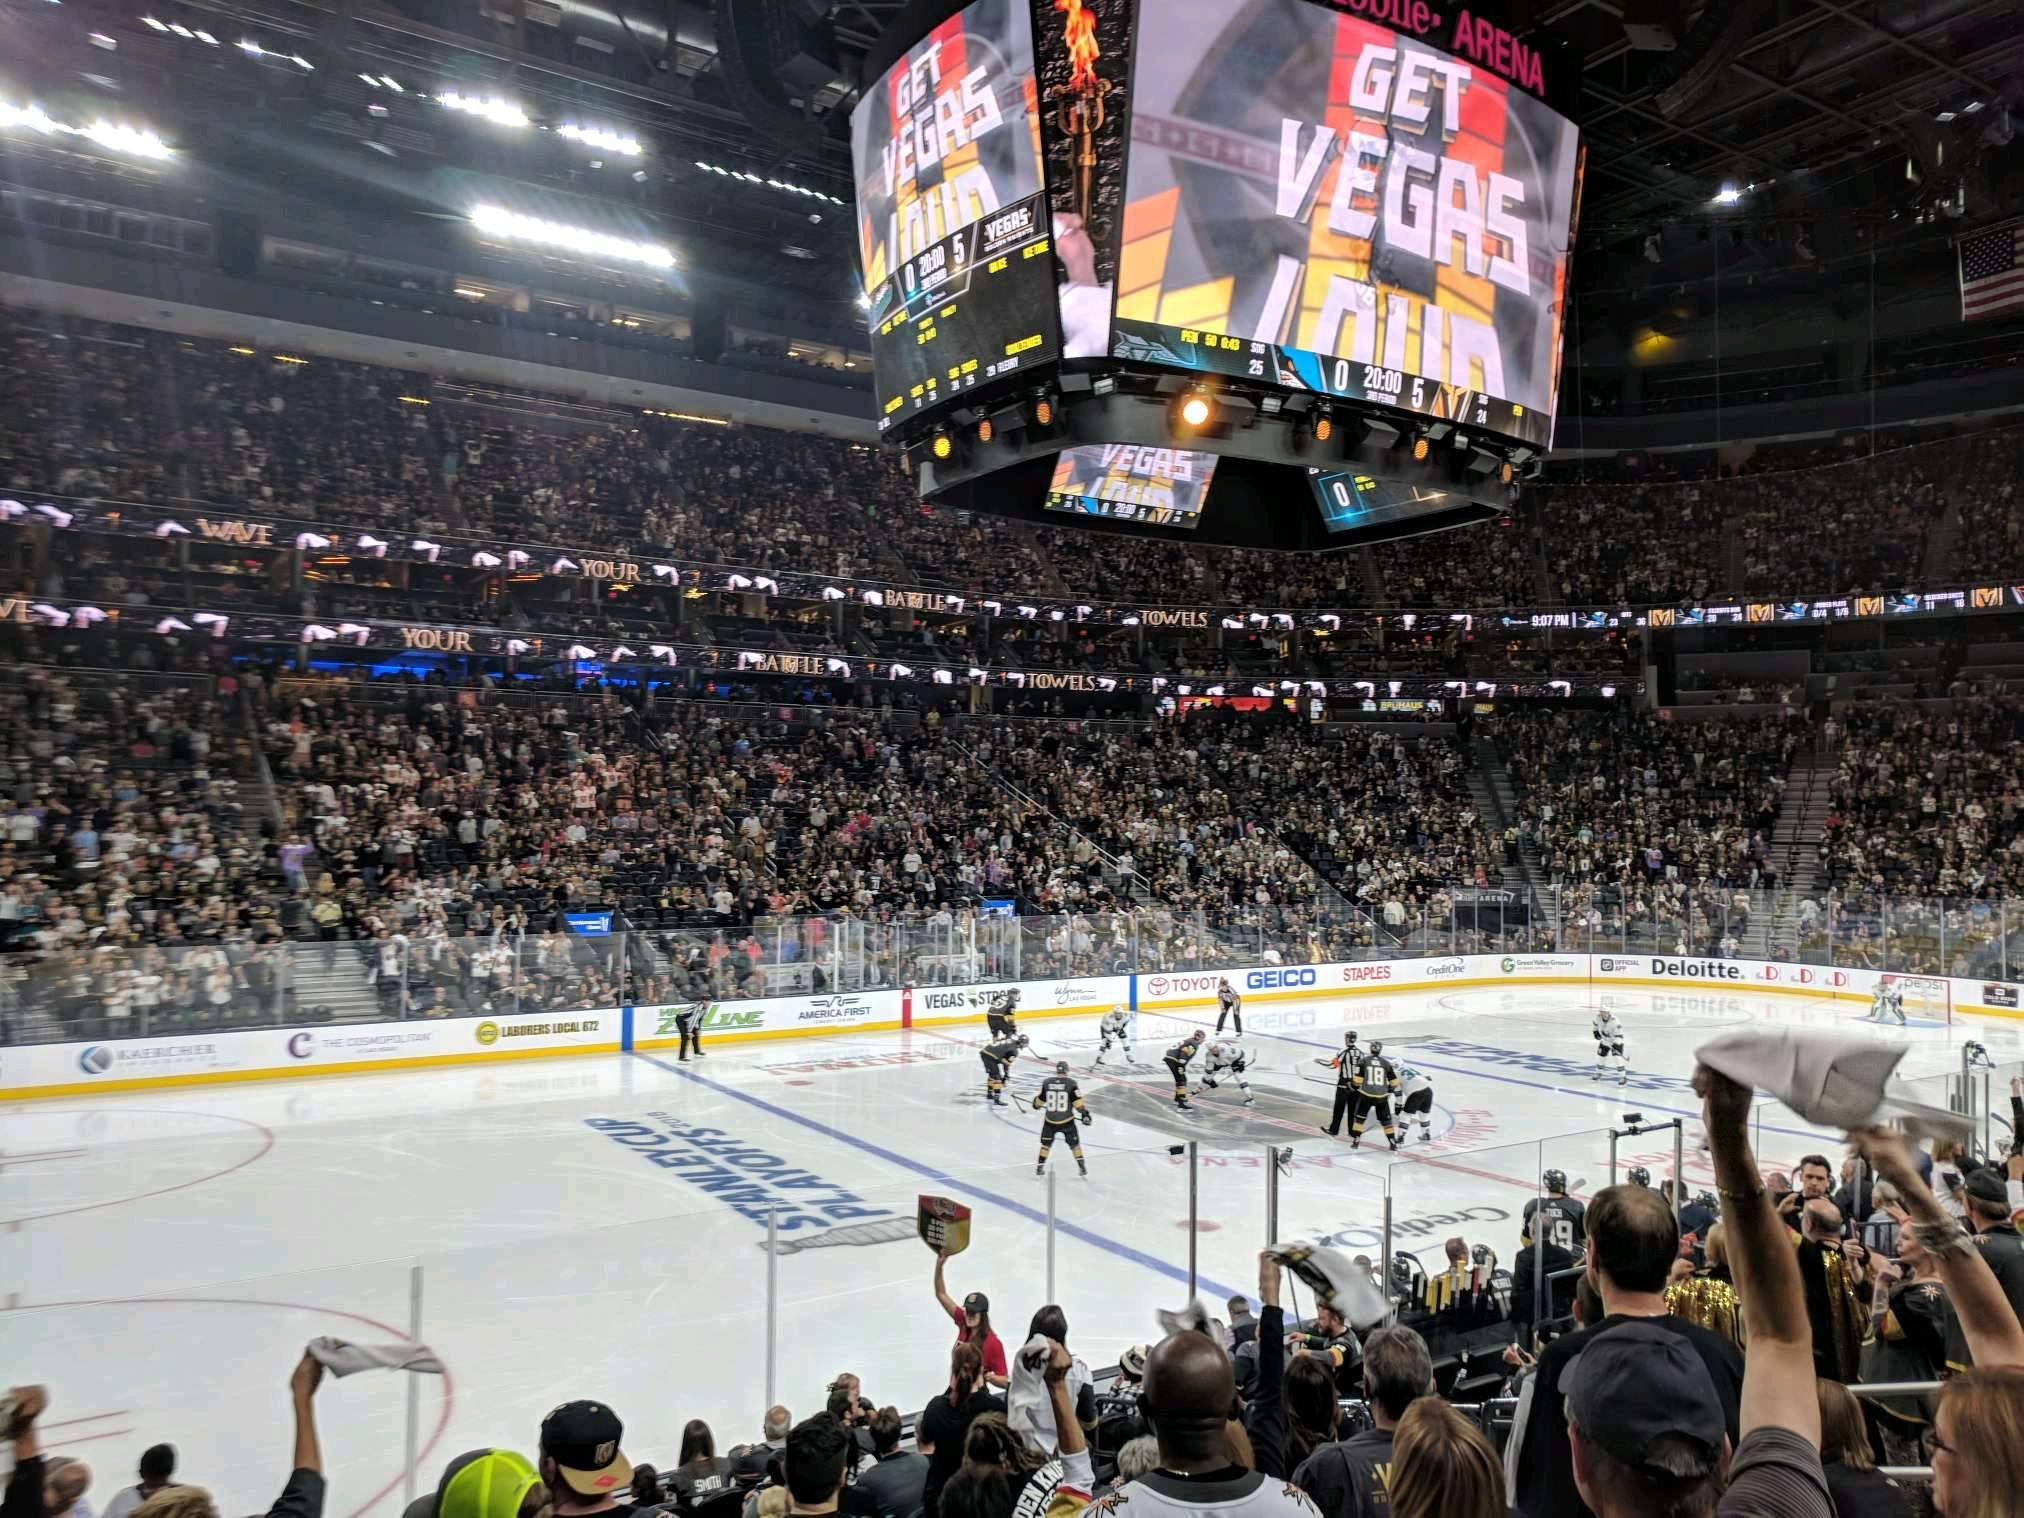 T-Mobile Arena Section 4 Row J Seat 4